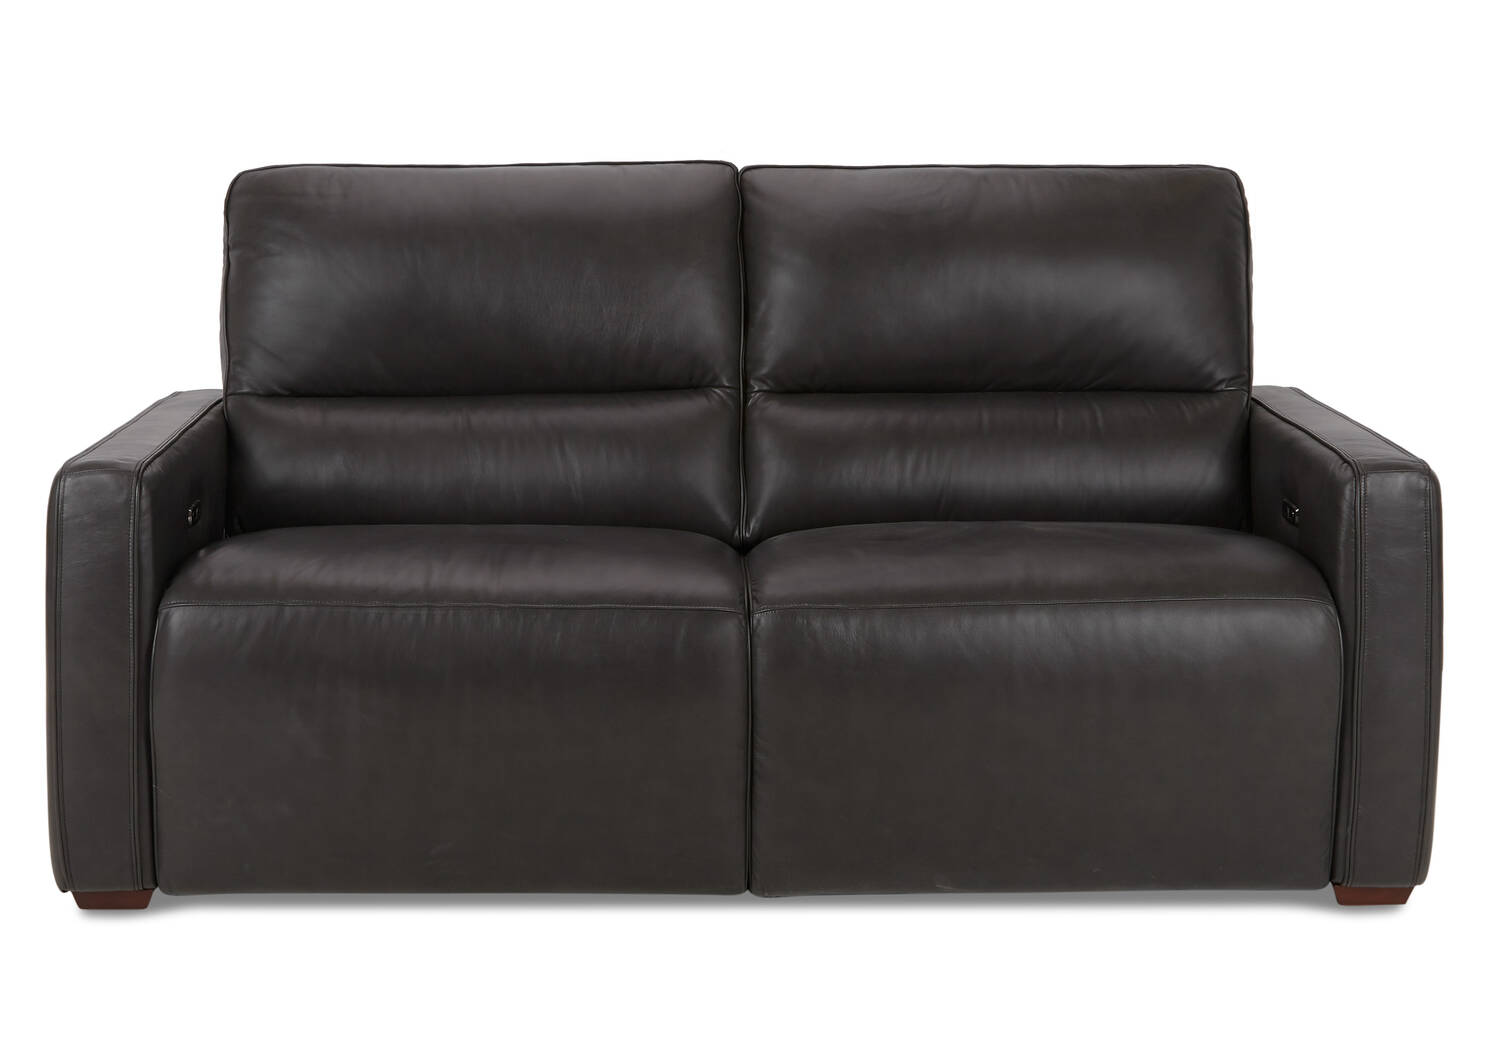 Encore Leather Reclining Sofa -Bram Coal